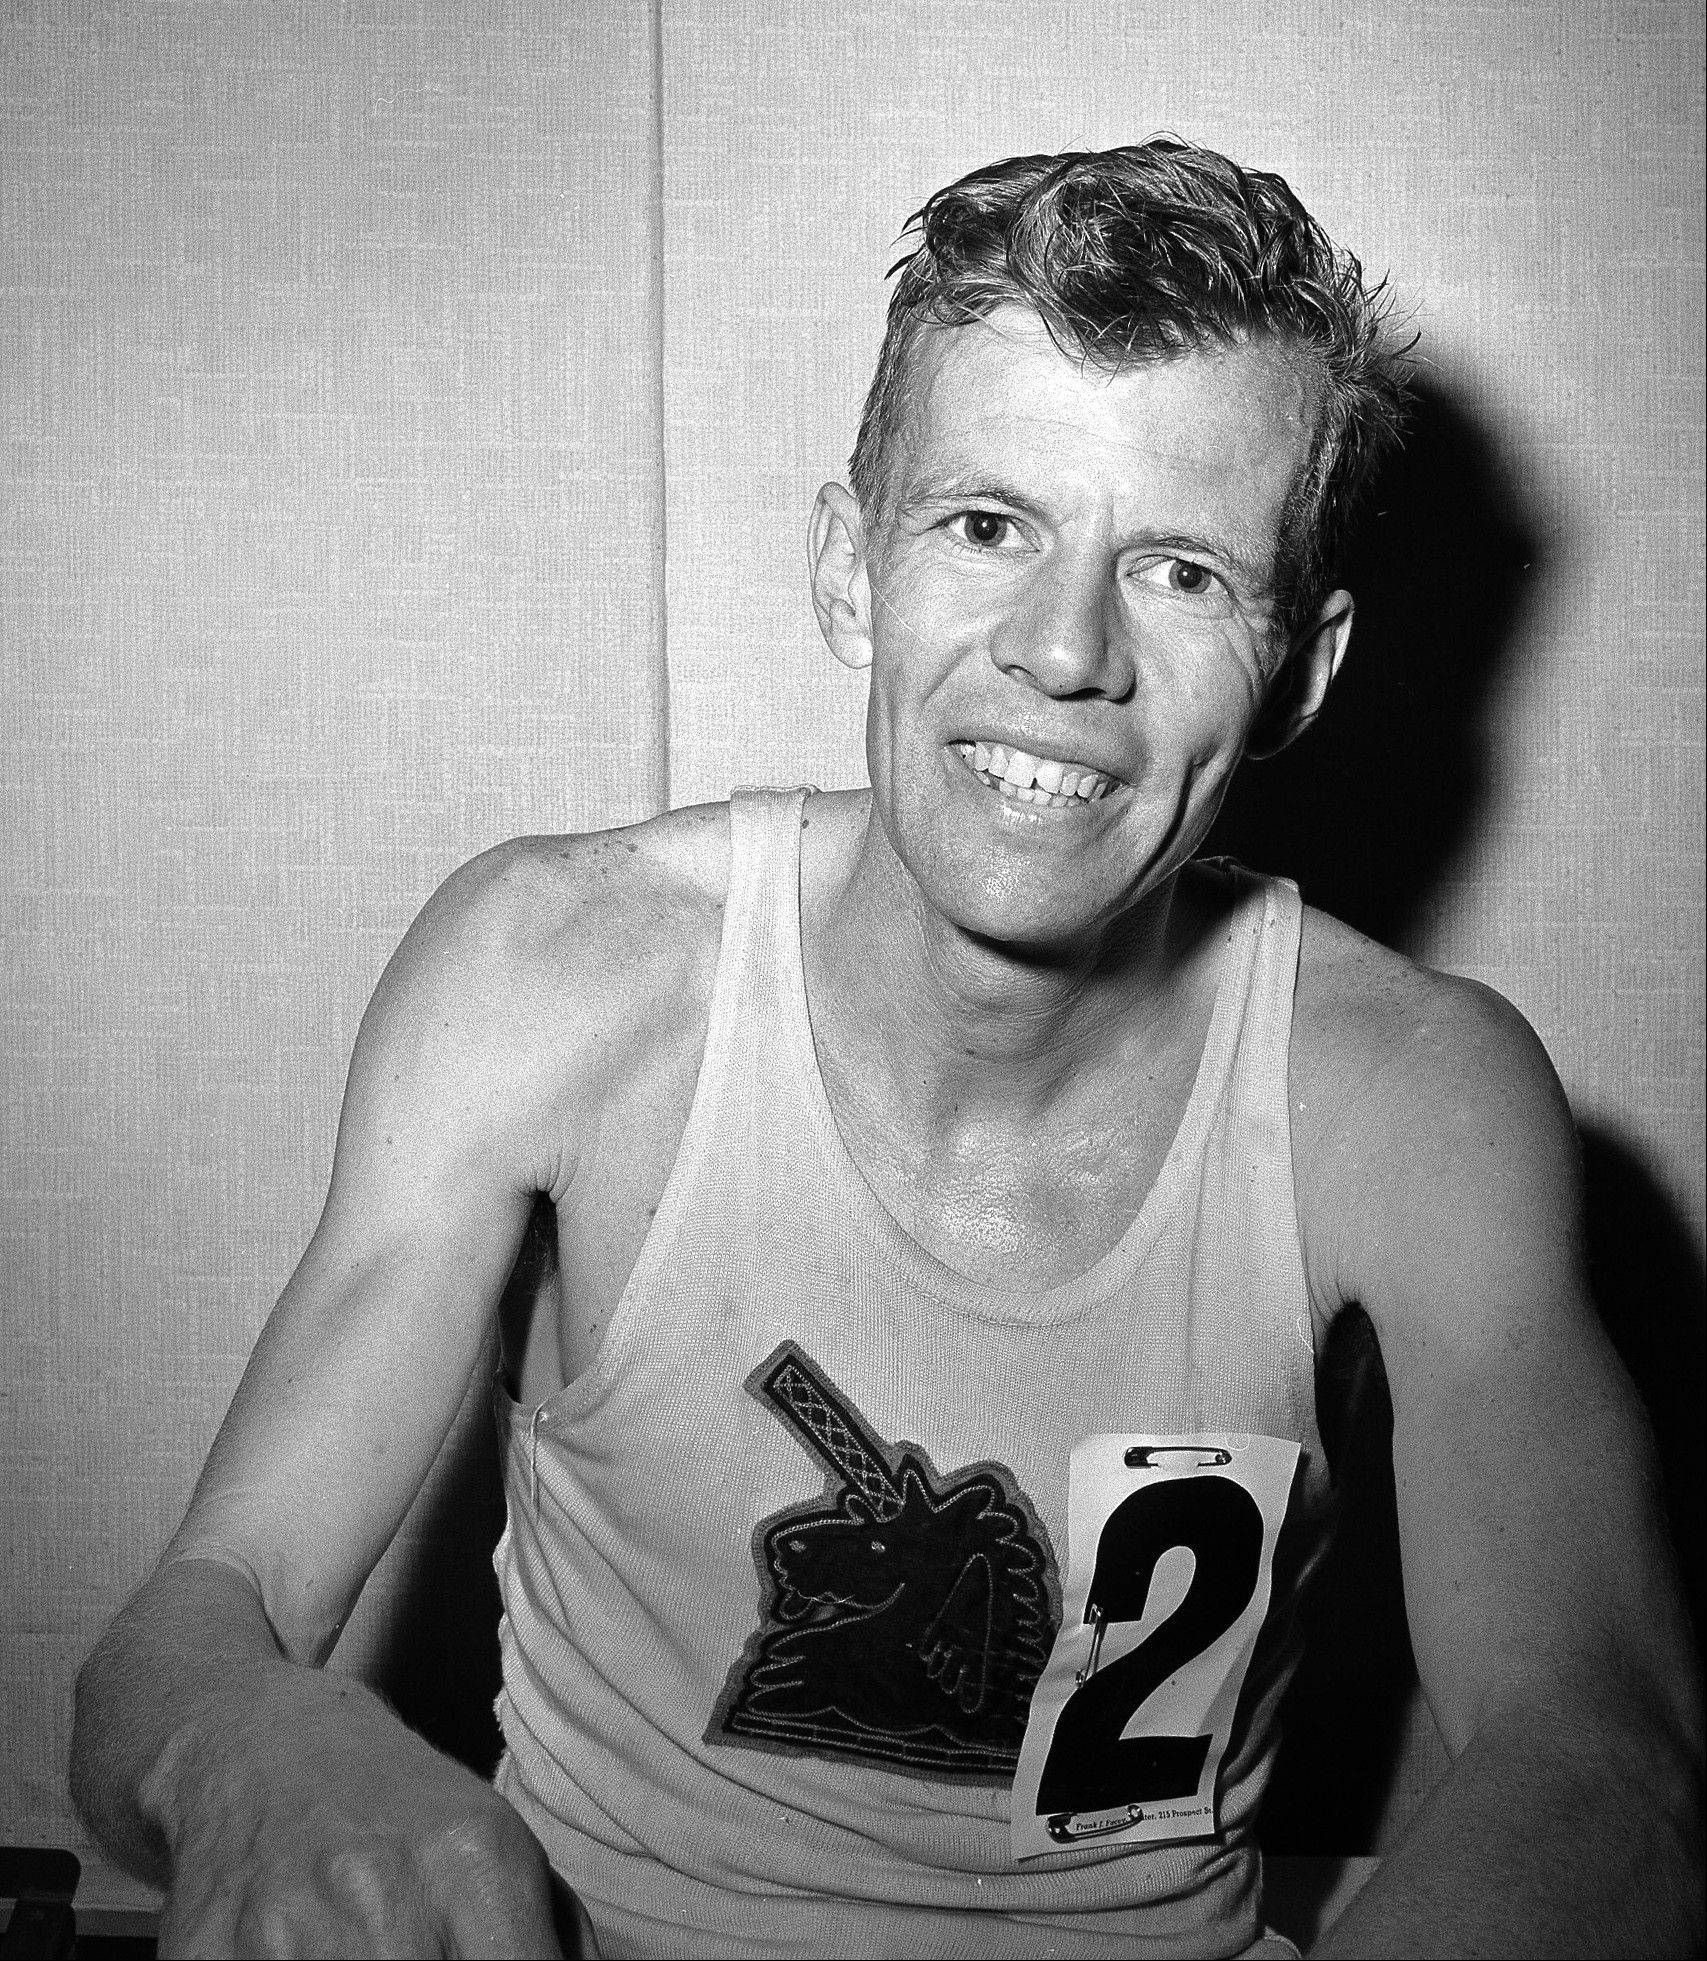 John J. Kelley sits in his dressing room after finishing fourth in the Boston Marathon in Boston. Kelley, winner of the 1957 Boston Marathon and known to his fans as the first modern American road runner, has died. Amby Burfoot, a friend whom Kelley coached in high school in Groton in the early 1960s, confirmed his death. He said Kelley died Sunday, Aug. 21, 2011, in Stonington, Conn., at his daughter's home from a melanoma that spread to his lungs. He was 80.